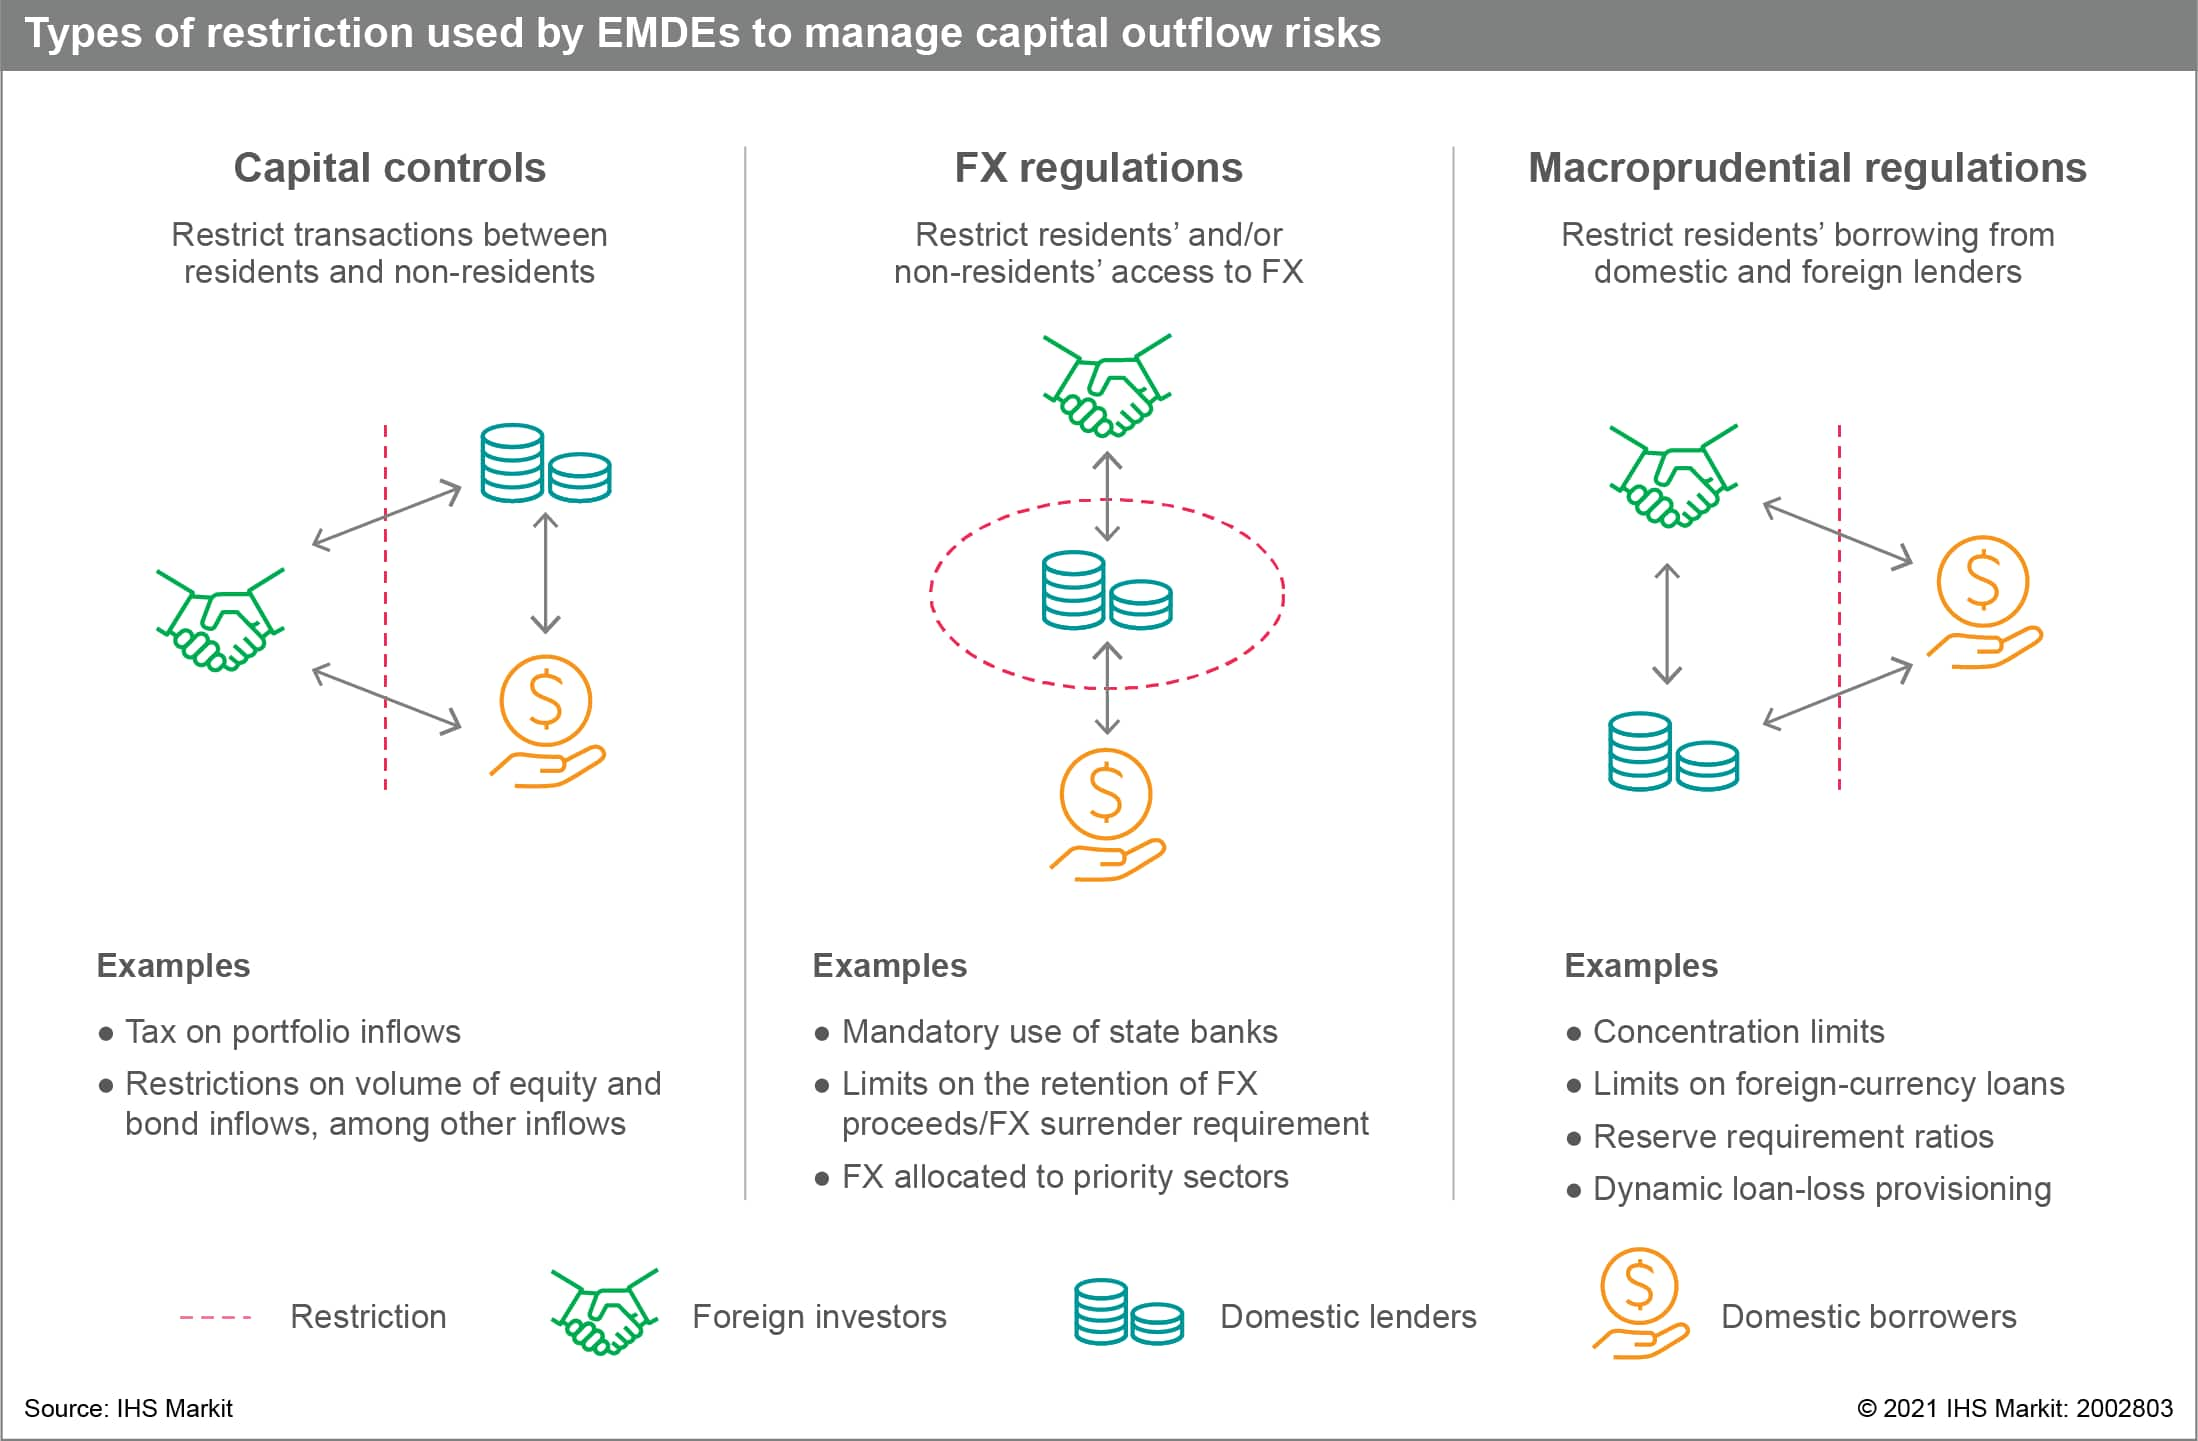 types of restrictions used by EMDEs to manage capital outflow risks